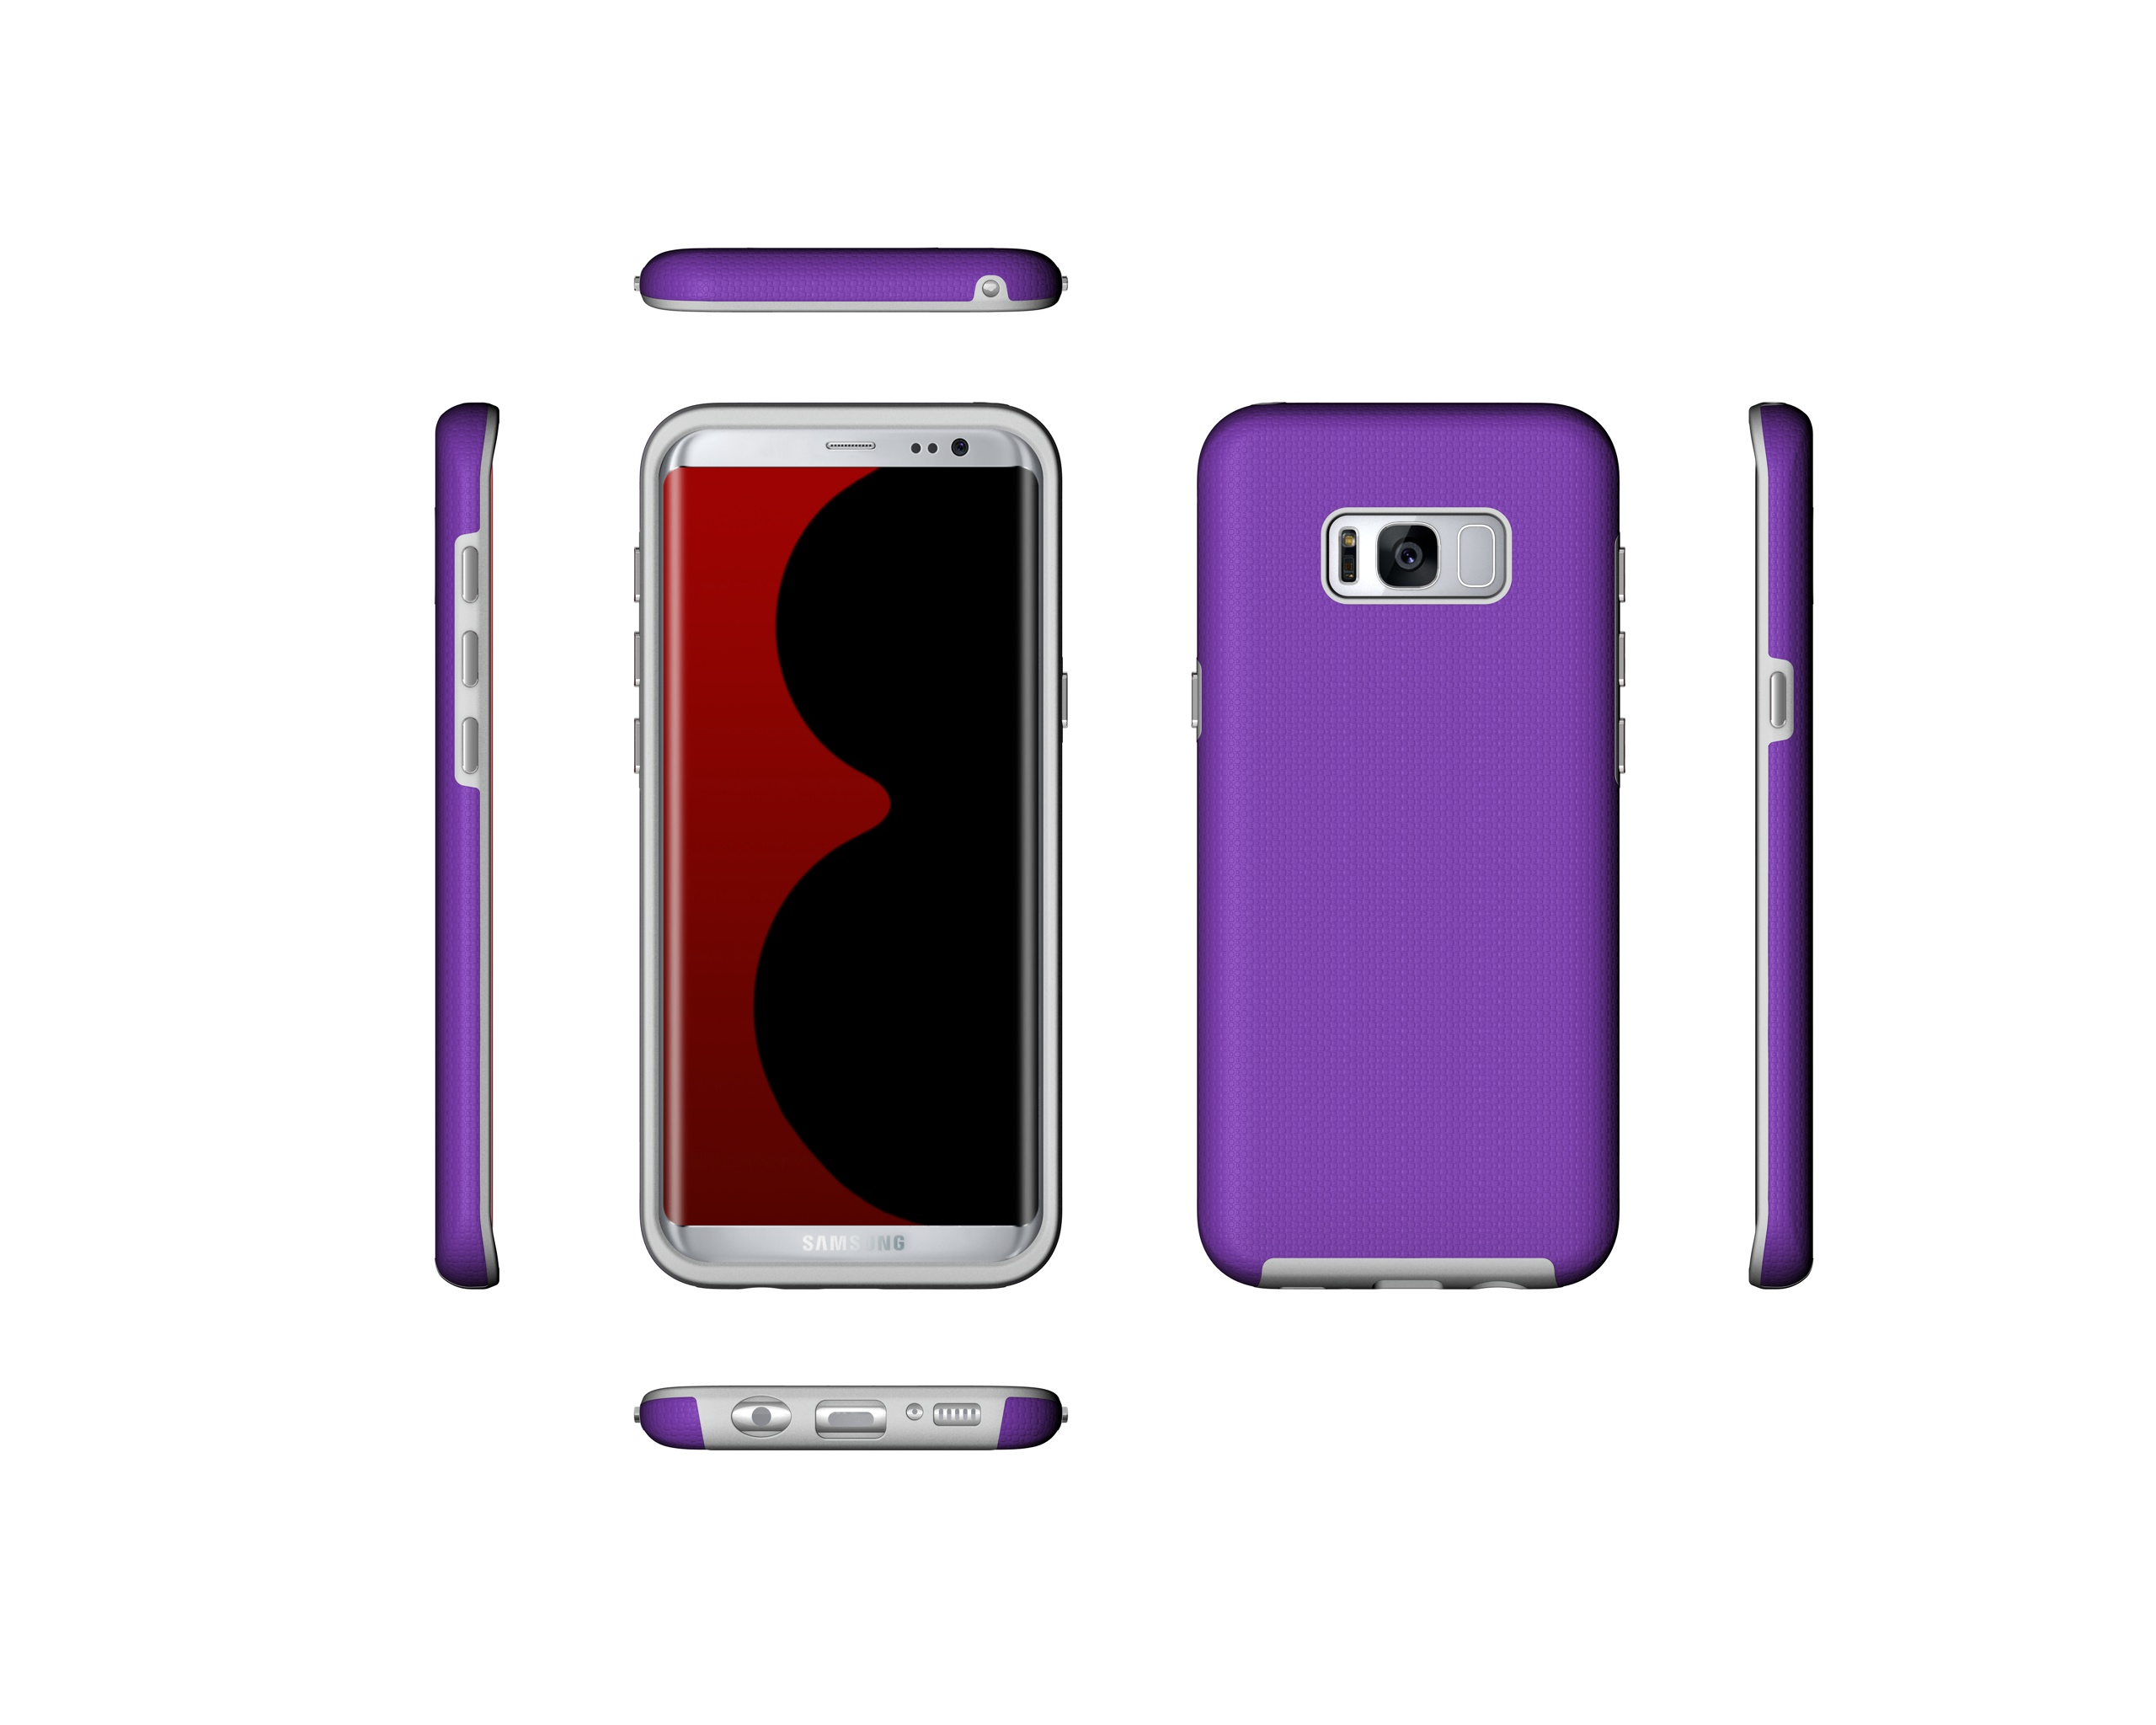 US $4 99 |Luxury Case for Samsung Galaxy S8 Plus TPU+PC Case for Samsung  S8Plus SM G955F G955U G955YI G9550 G955N/W/D/J Combination Case-in Phone